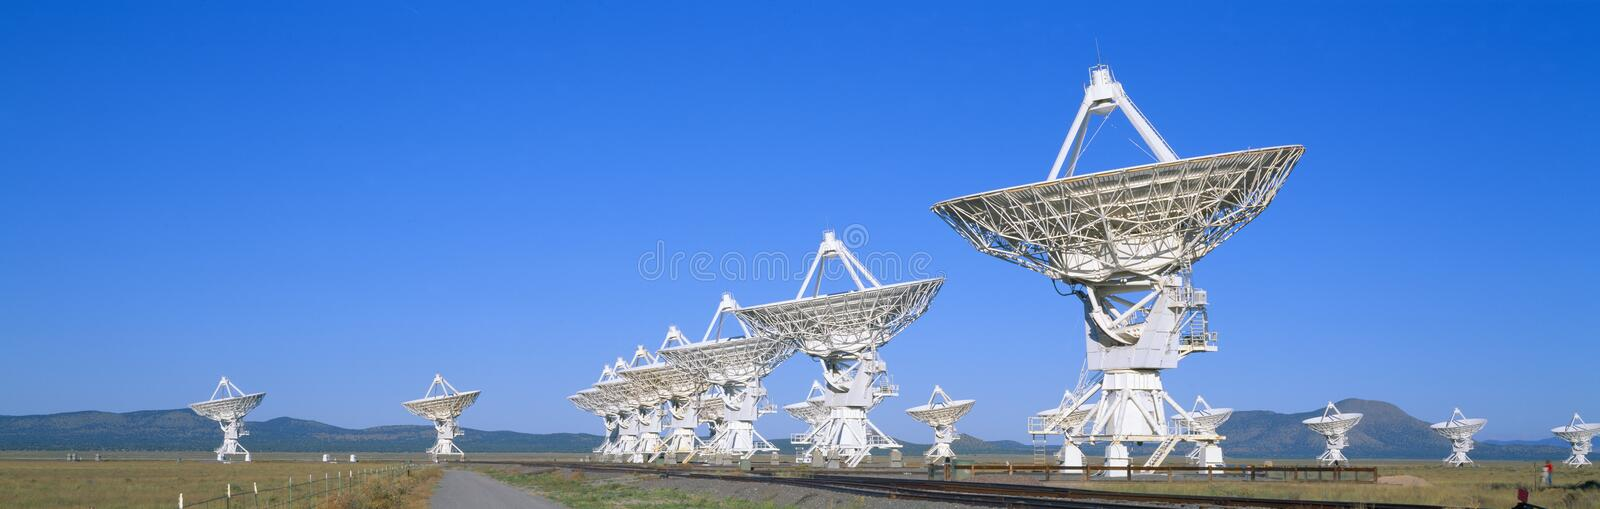 National Astronomy Observatory, Socorro, New Mexico stock image